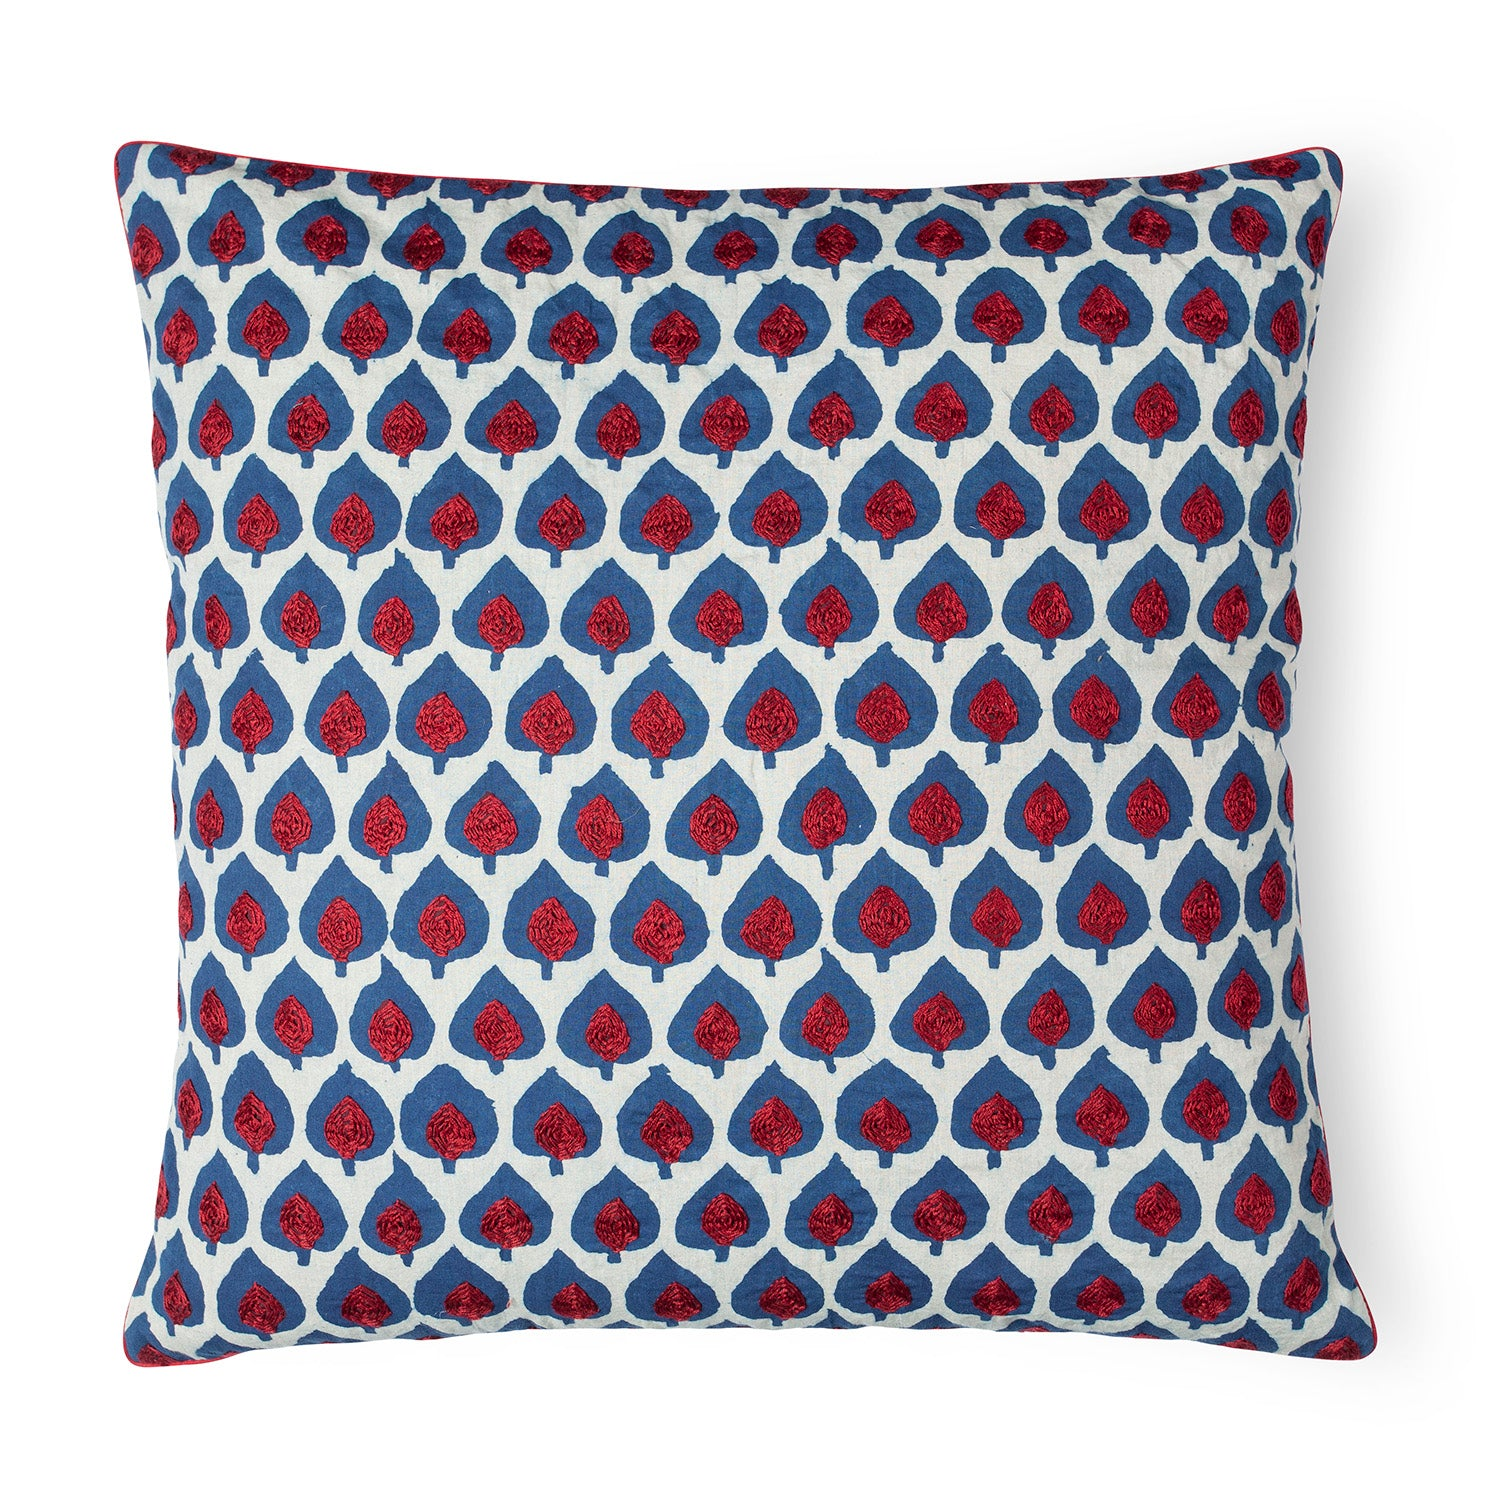 Dabu Cushion Cover Hand Embroidered 18x18